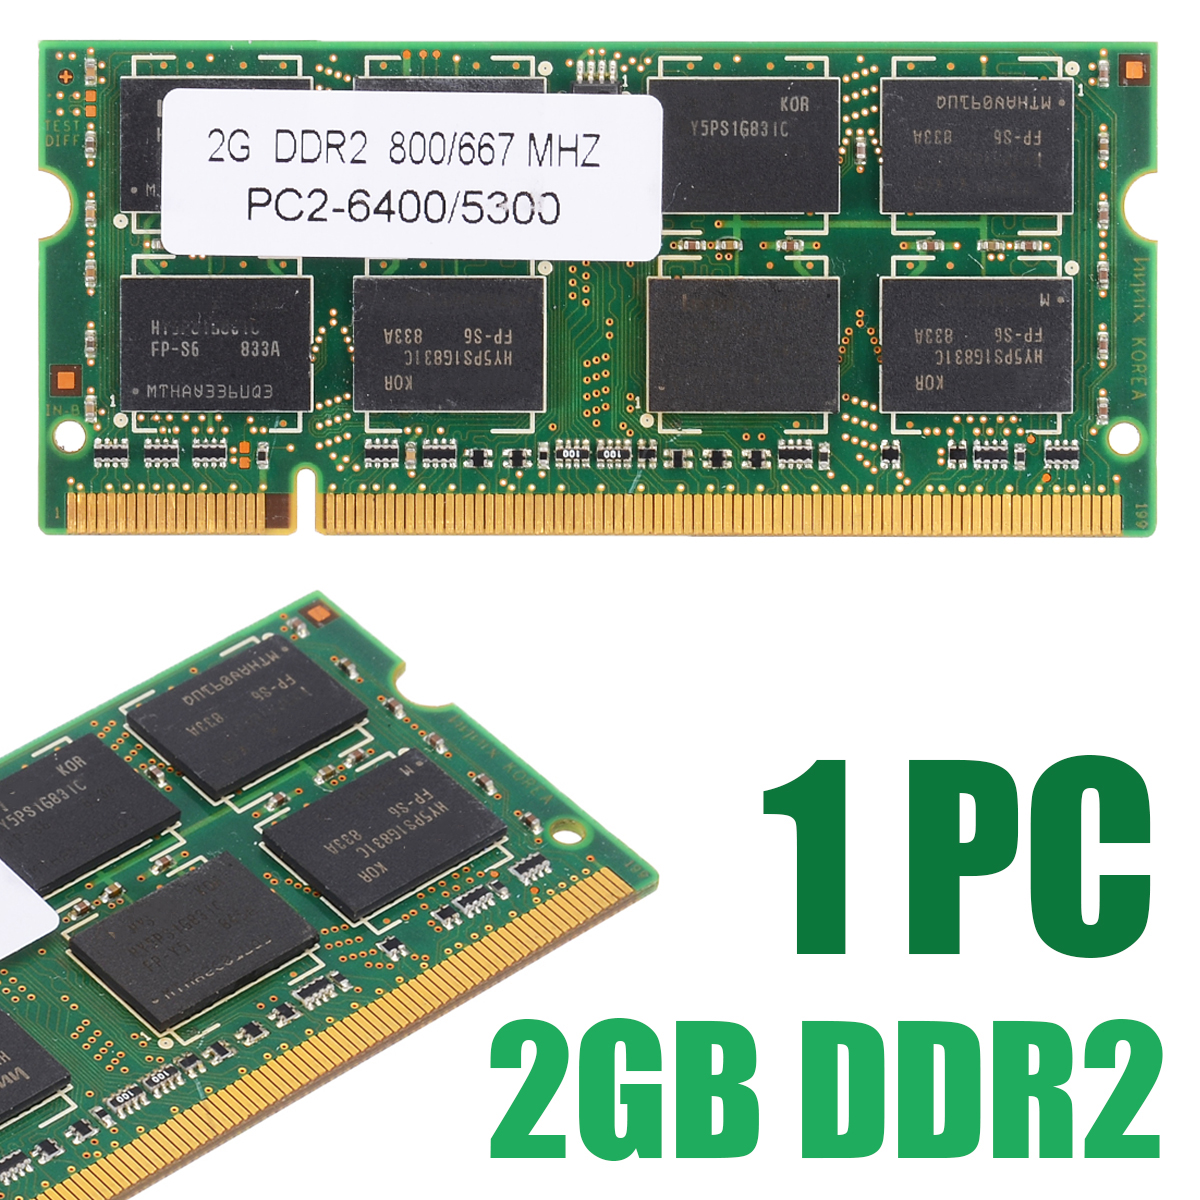 1pc Laptop Memory 2GB DDR2 PC2 6400/5300 800/667 MHZ Notebook RAM 200pin Non-ECC Memory For Dell HP Acer ASUS